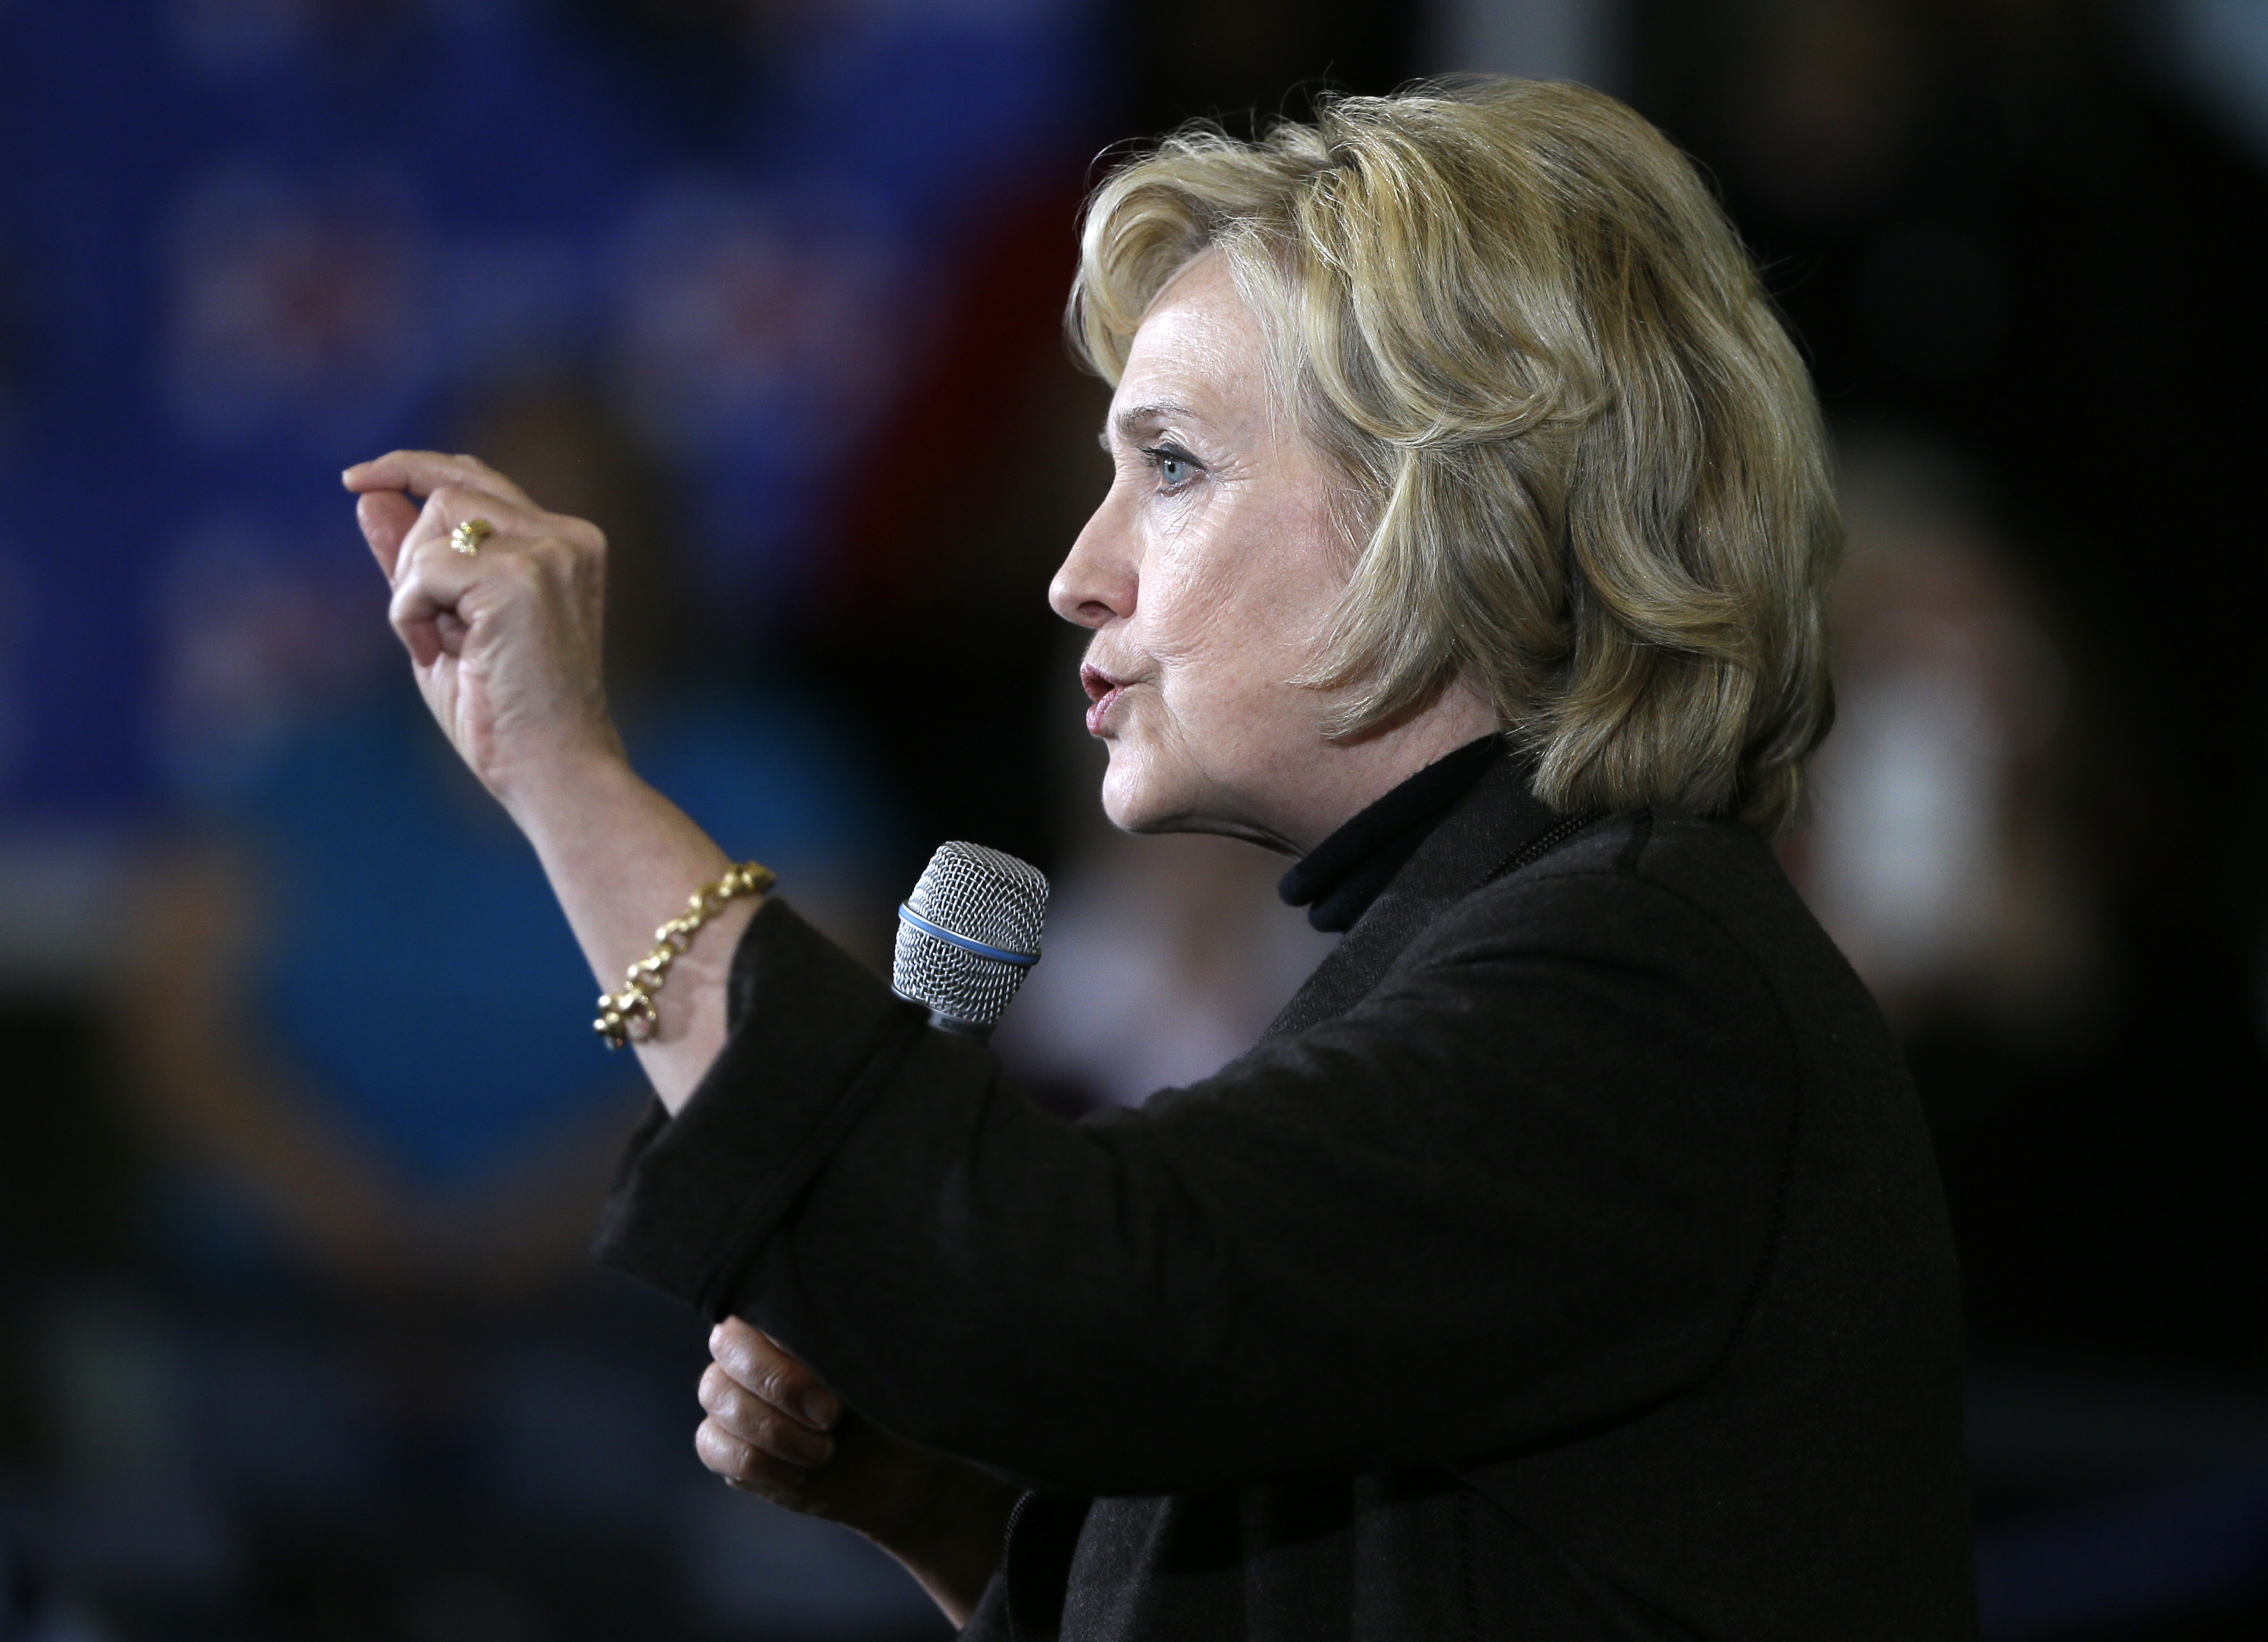 Democratic presidential candidate Hillary Clinton speaks during a town hall meeting, Dec. 4, 2015, in Fort Dodge, Iowa.